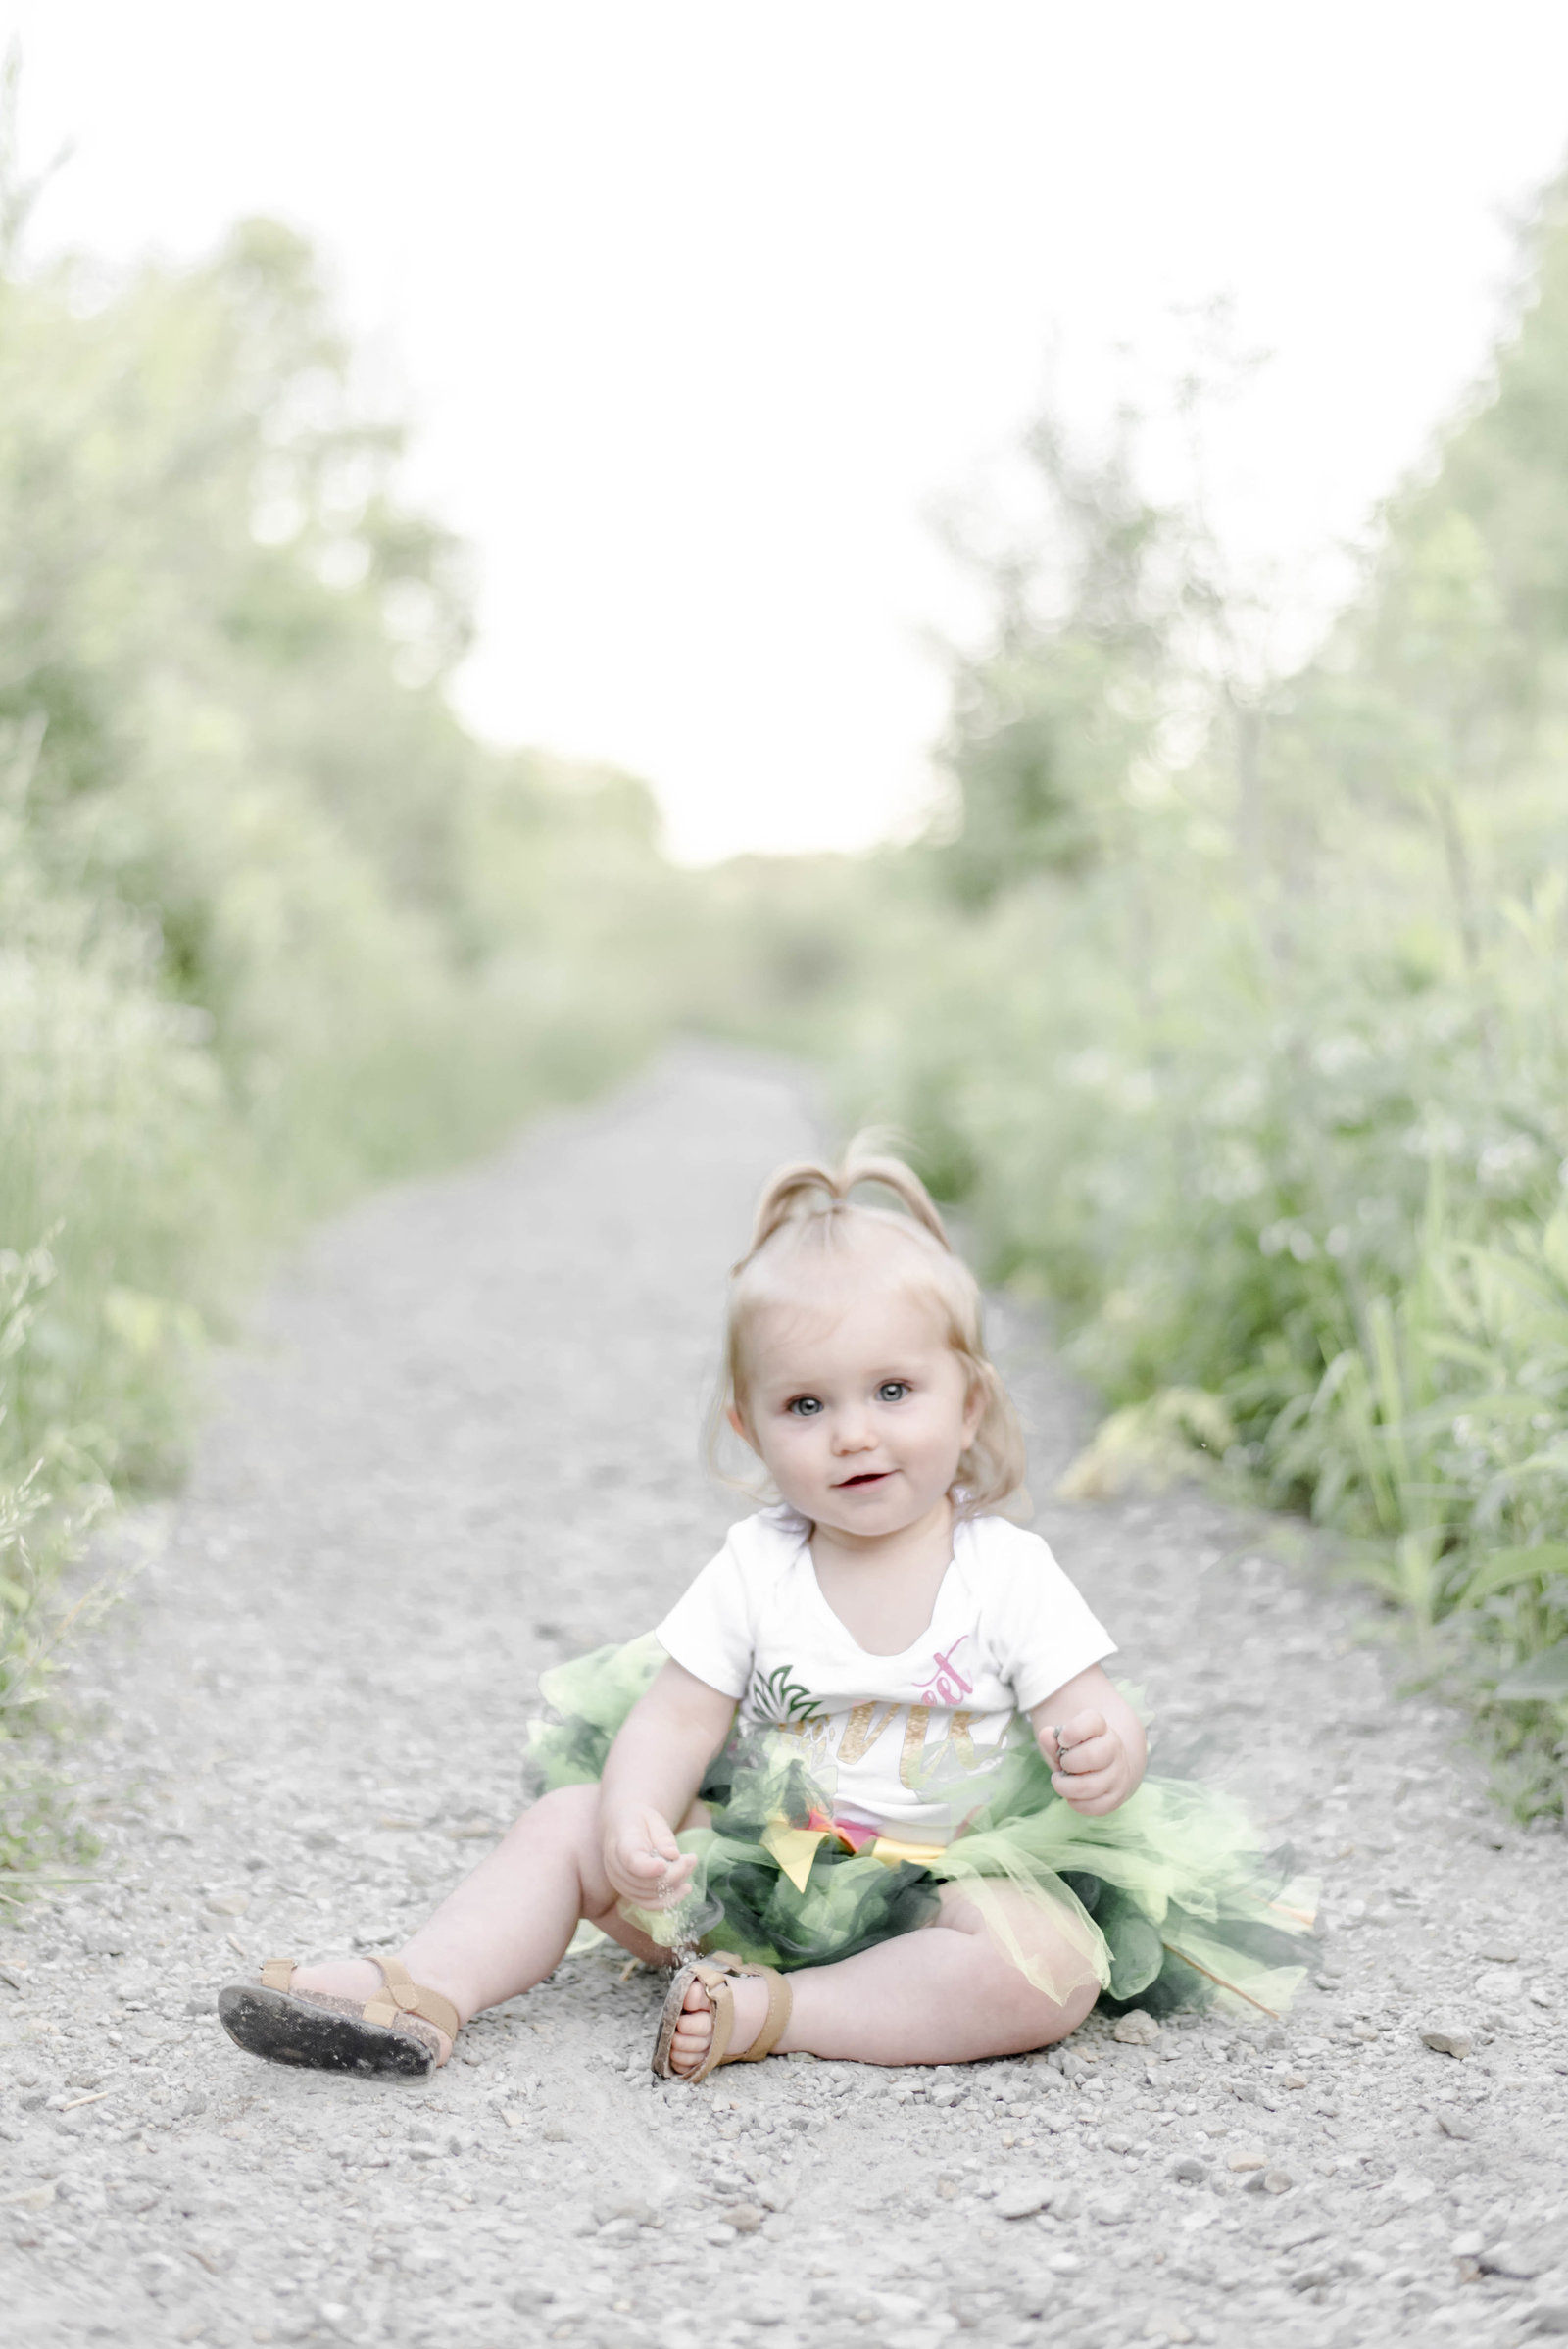 Cassidy_Alane_Photography-Cassidy_Alane_Photography-Shelby,_Nick_&_Lily_-_Family_Photographer-01